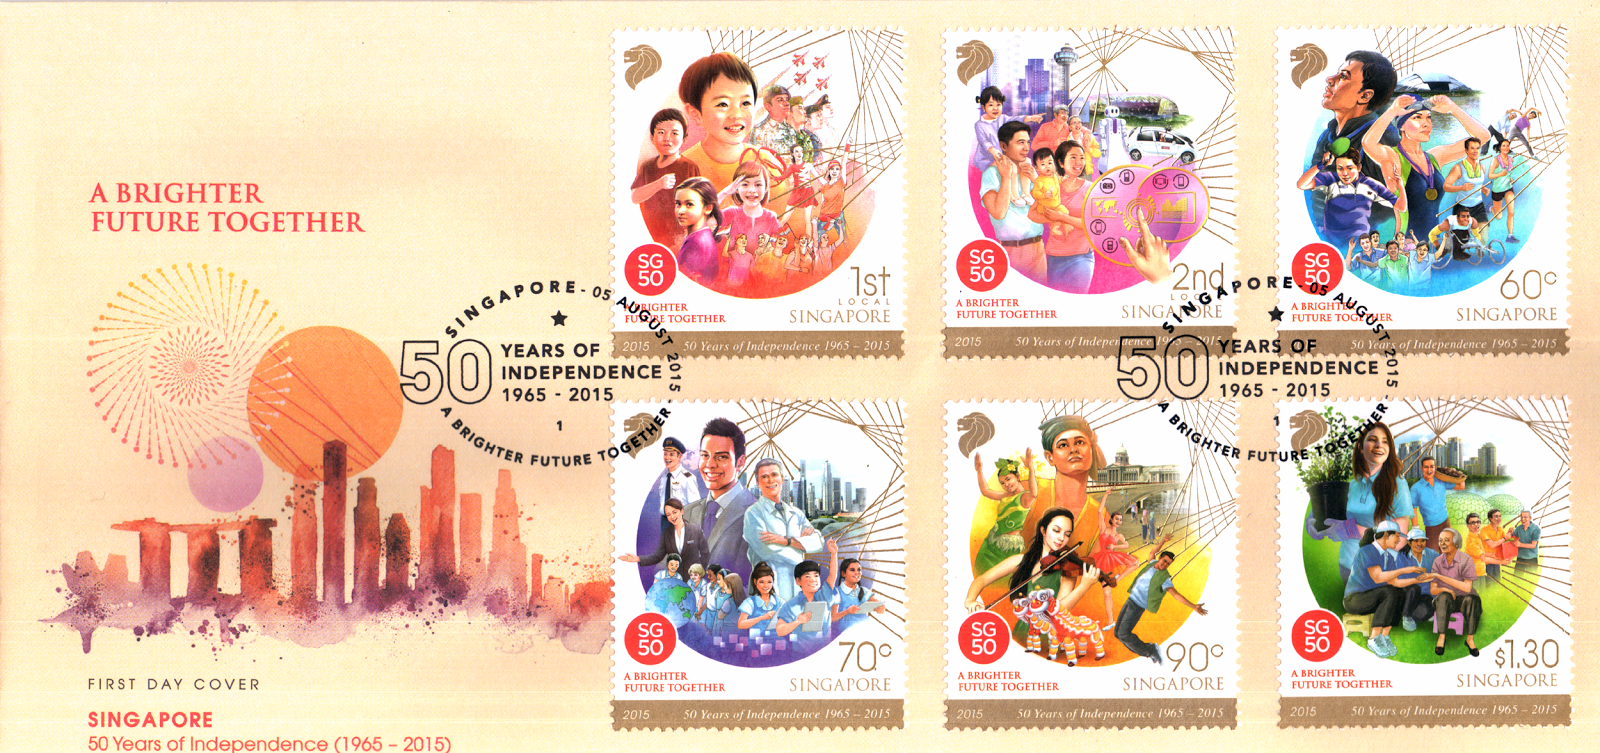 Singapore: 50 years of independence 1965-2015 - stamp set (S$4.17)